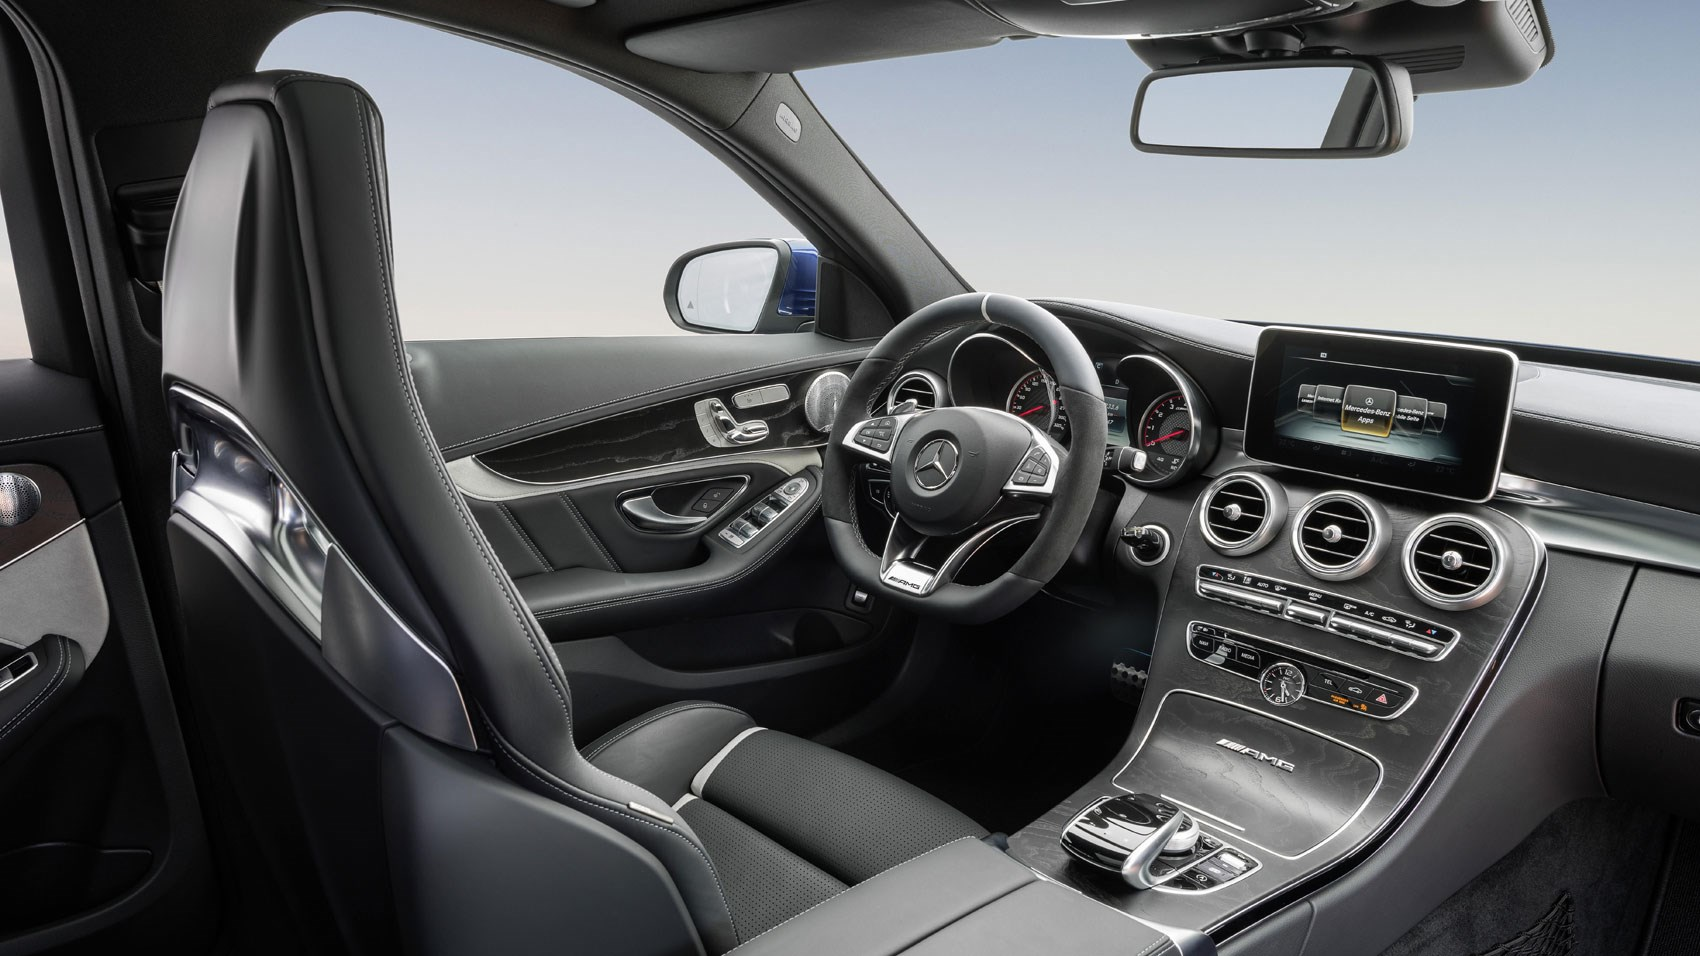 Audi rs7 2016 price in south africa